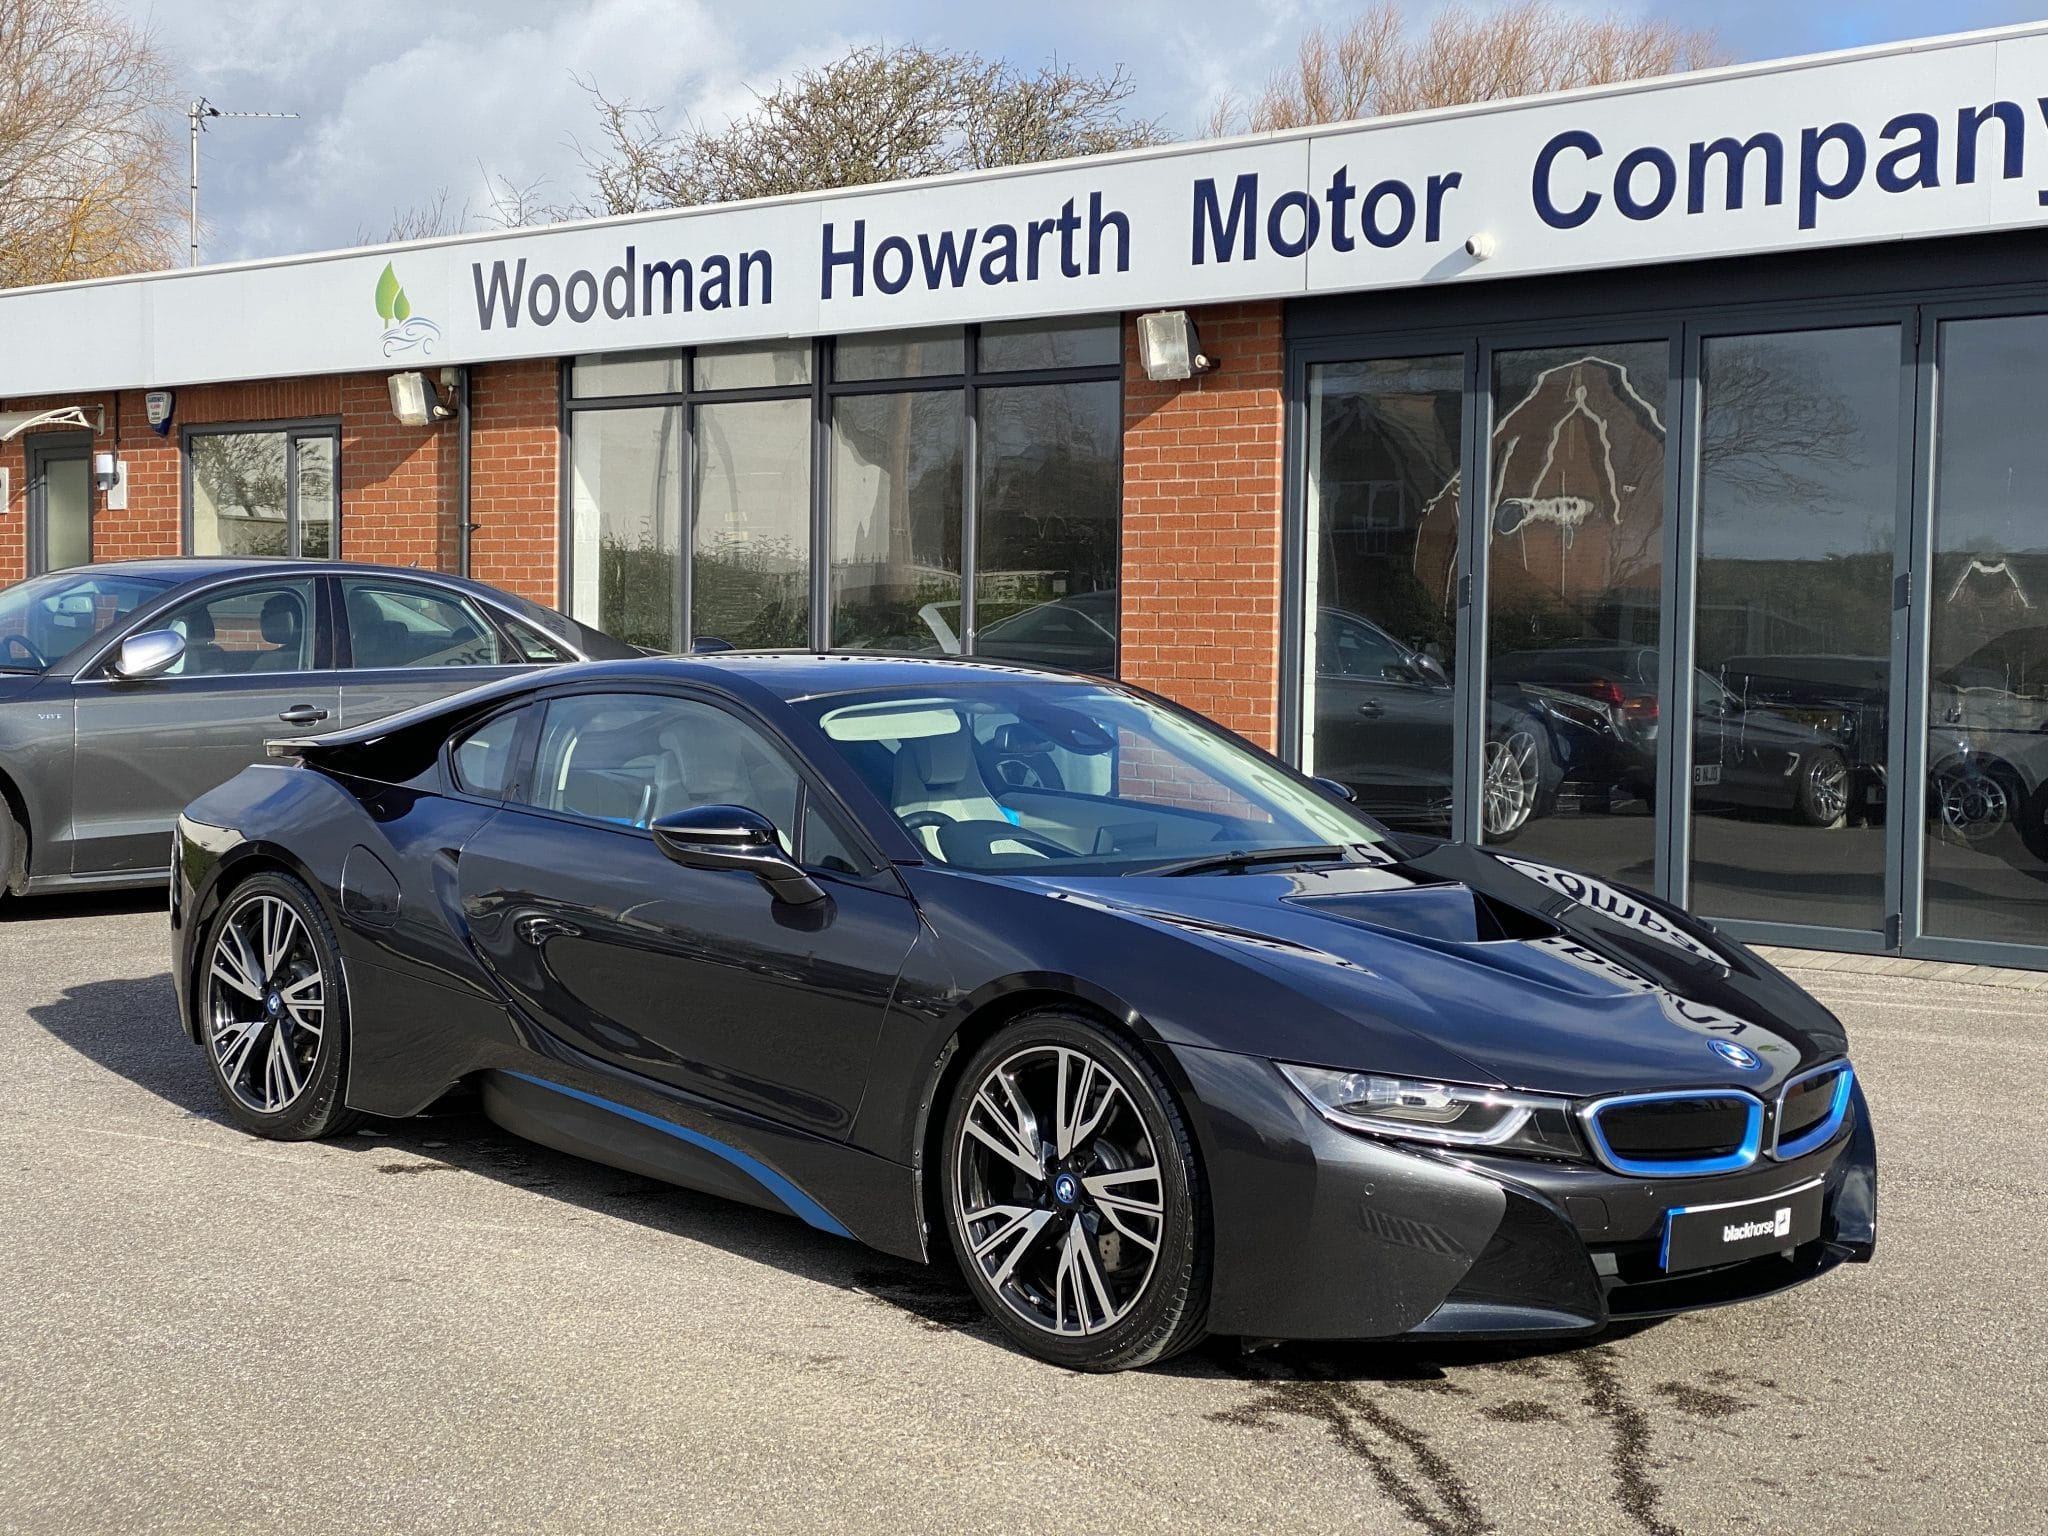 2014 64 BMW I8 COUPE 1.5 HYBRID 4X4 362BHP 1 Owner FBMWSH Pristine Example Throughout